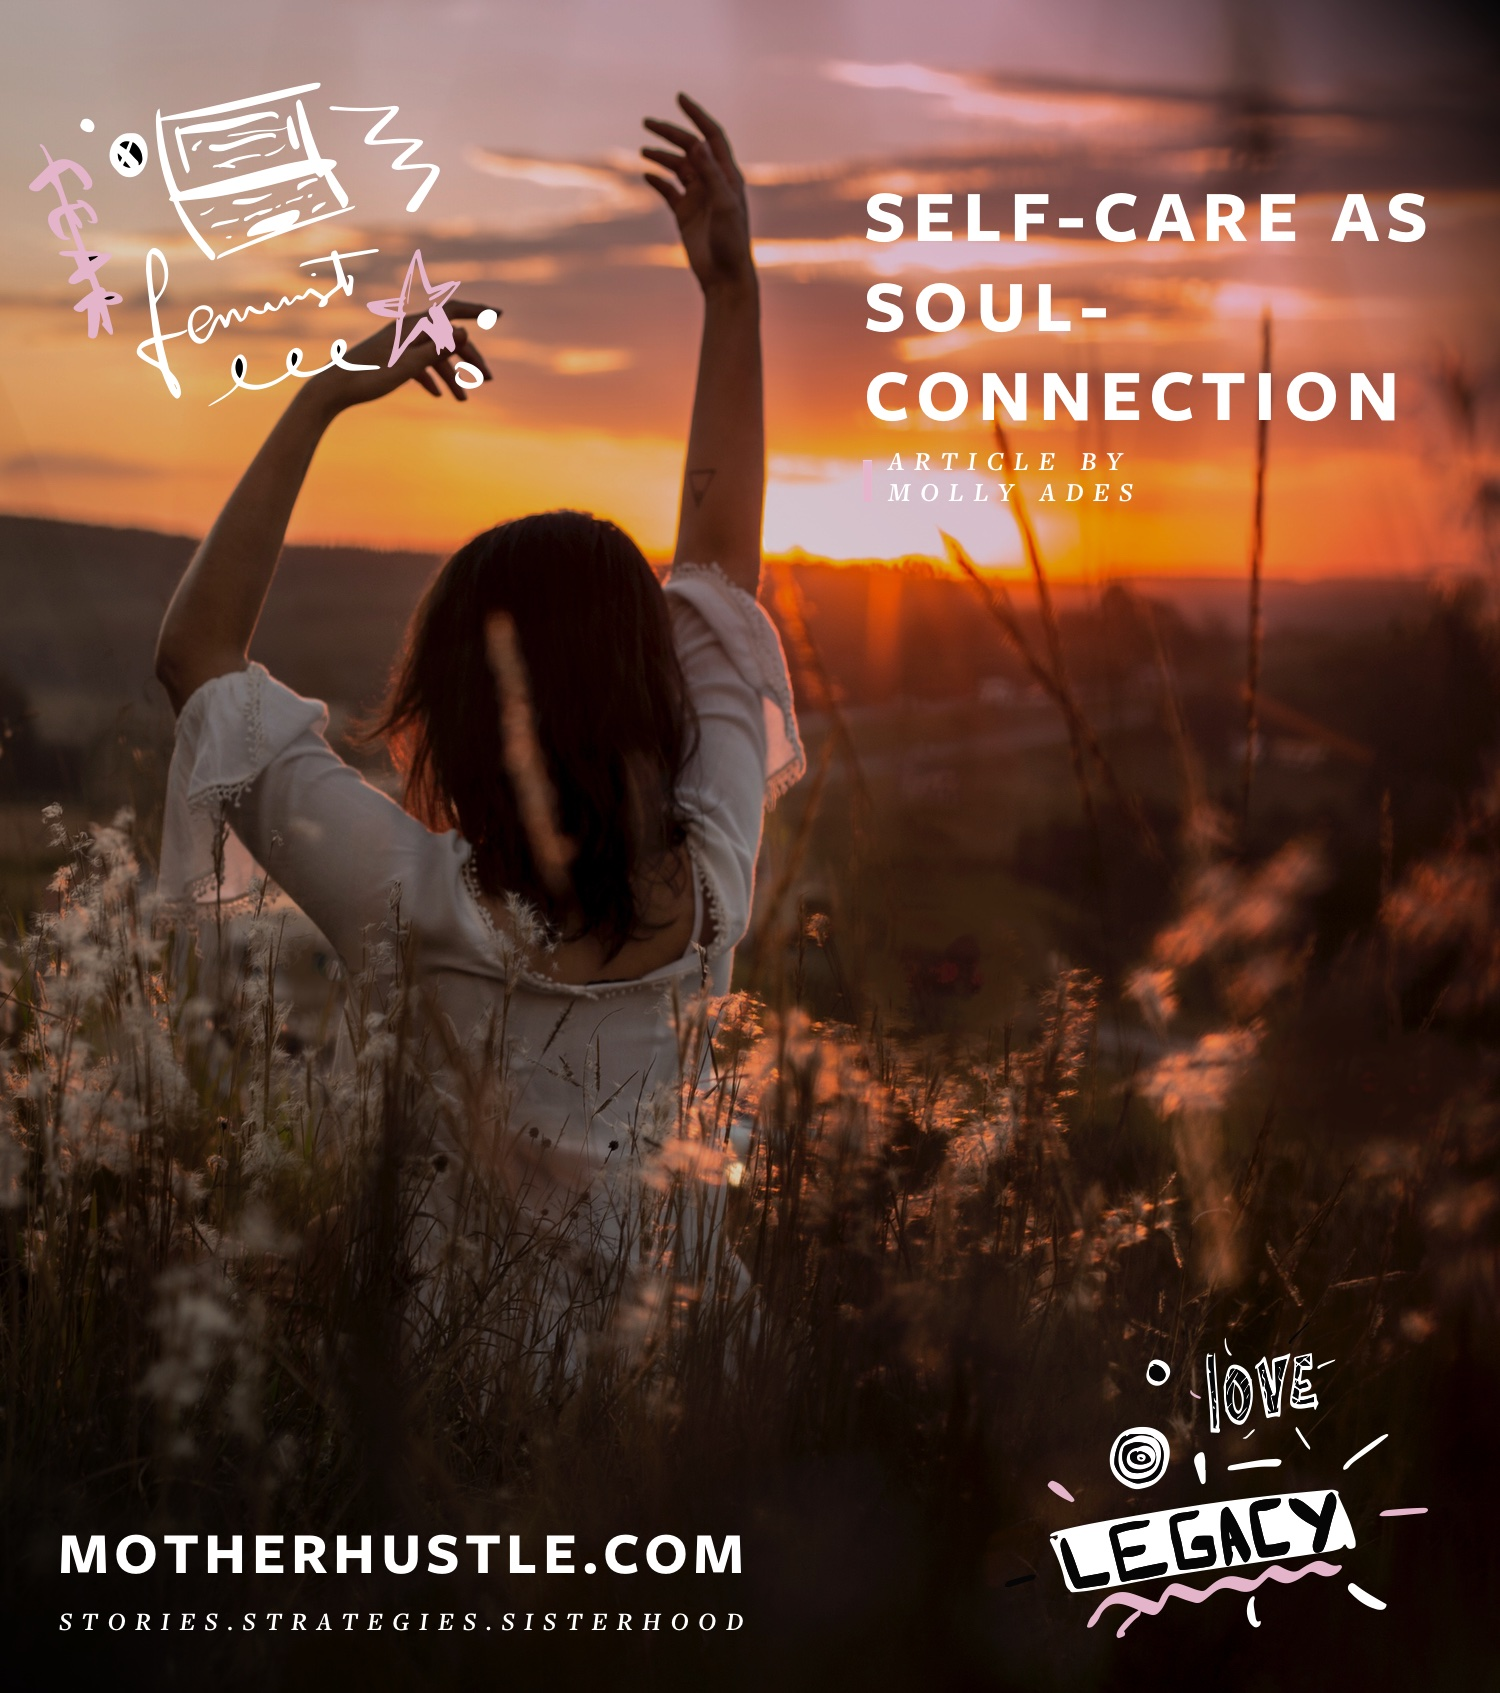 Self-Care as Soul-Connection - by Molly Ades for MotherHustle